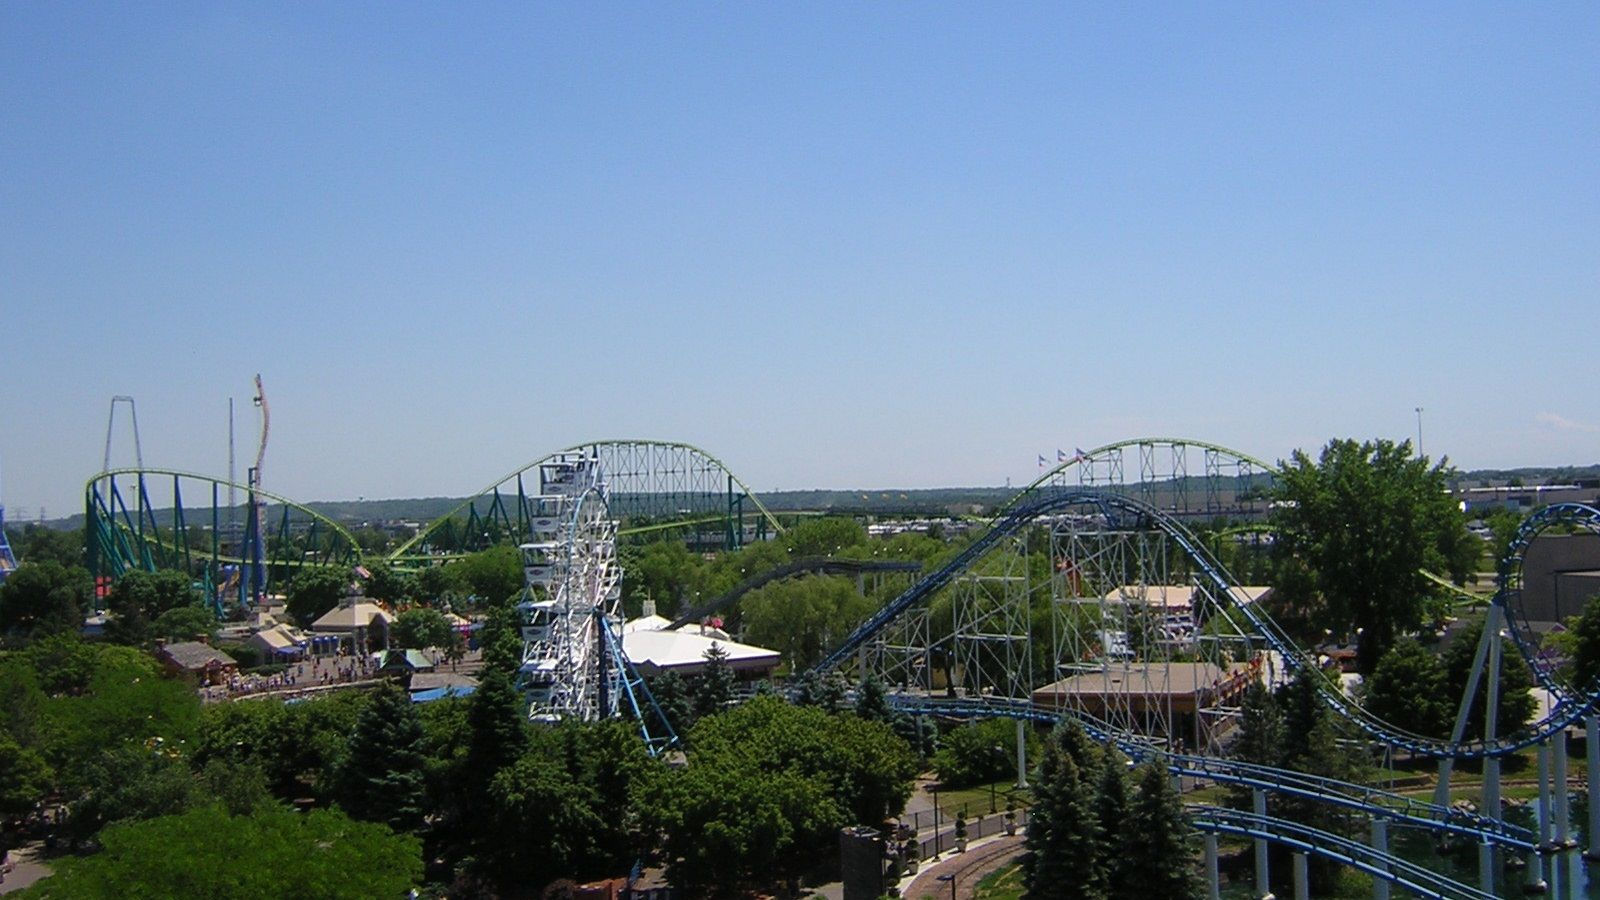 Things to Do - Valley Fair